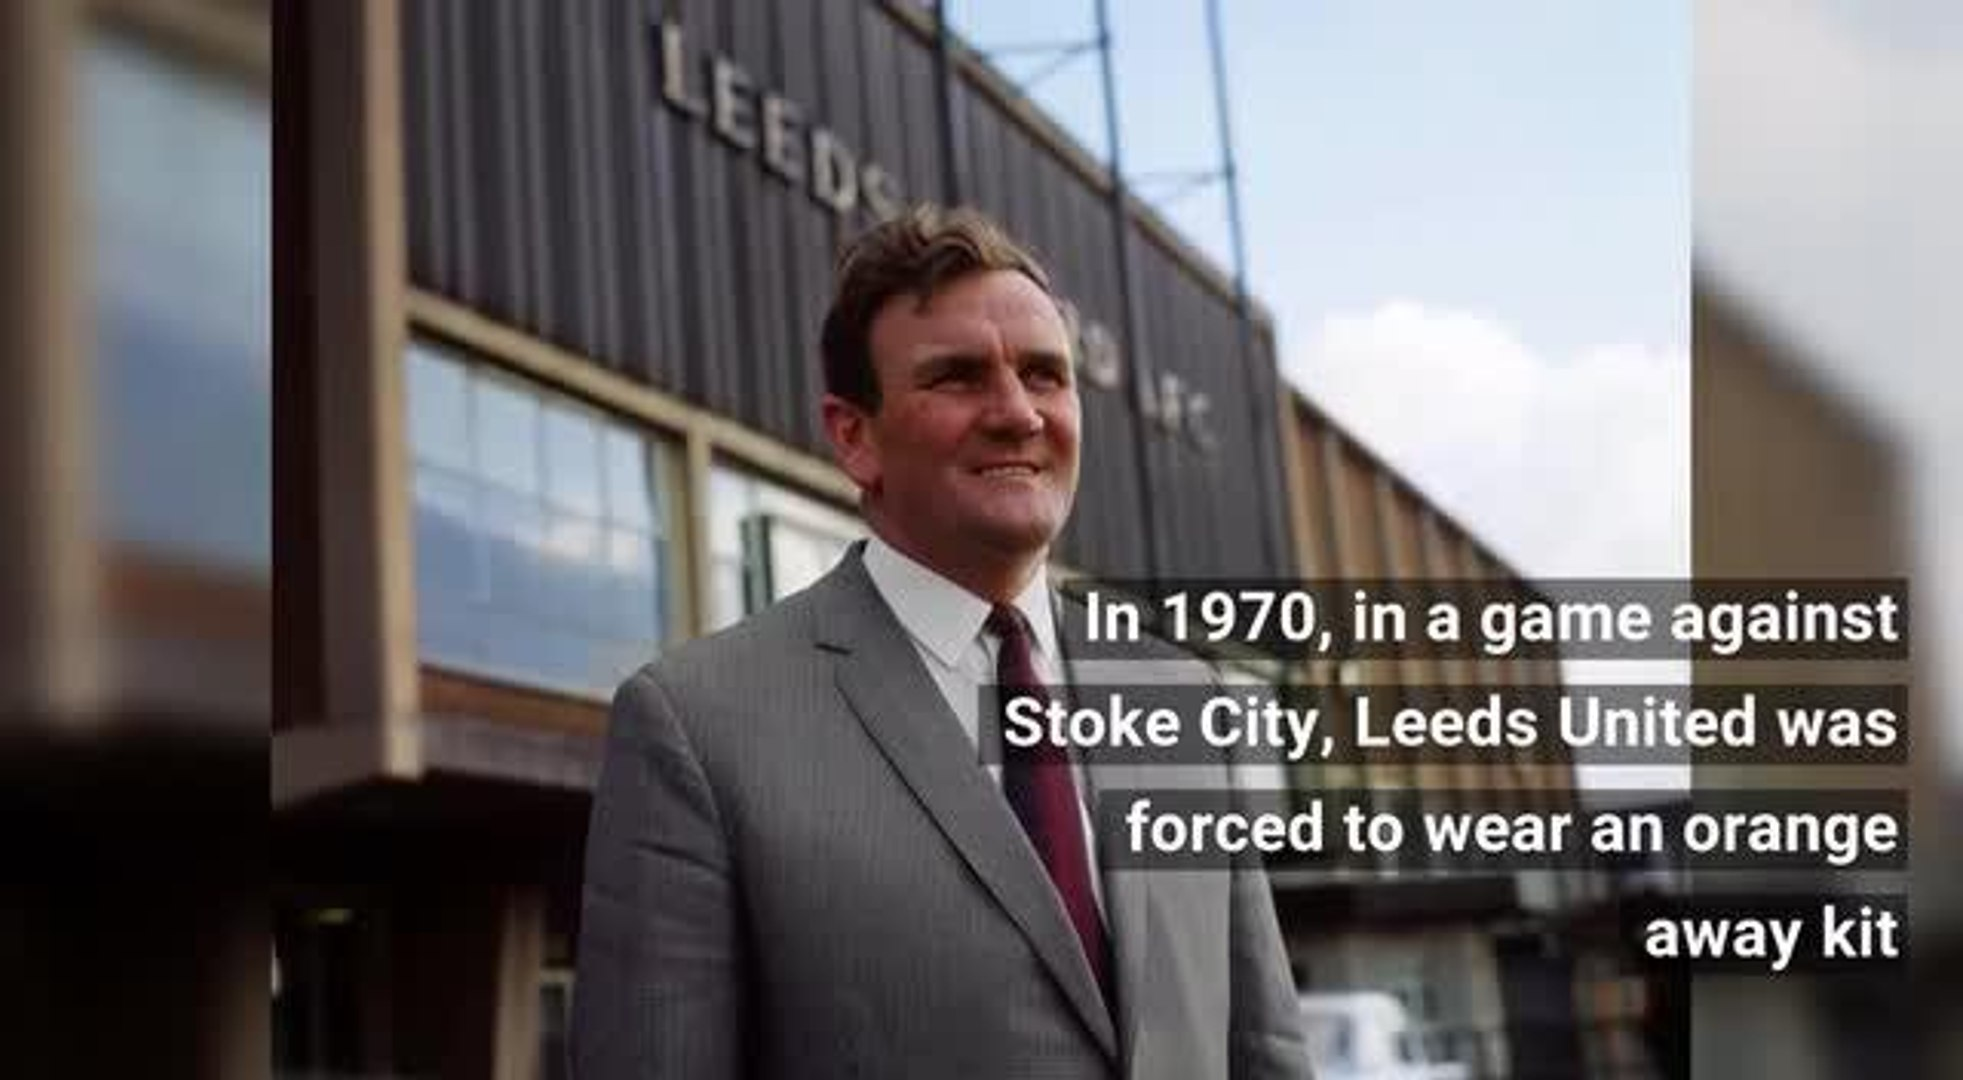 Leeds United facts